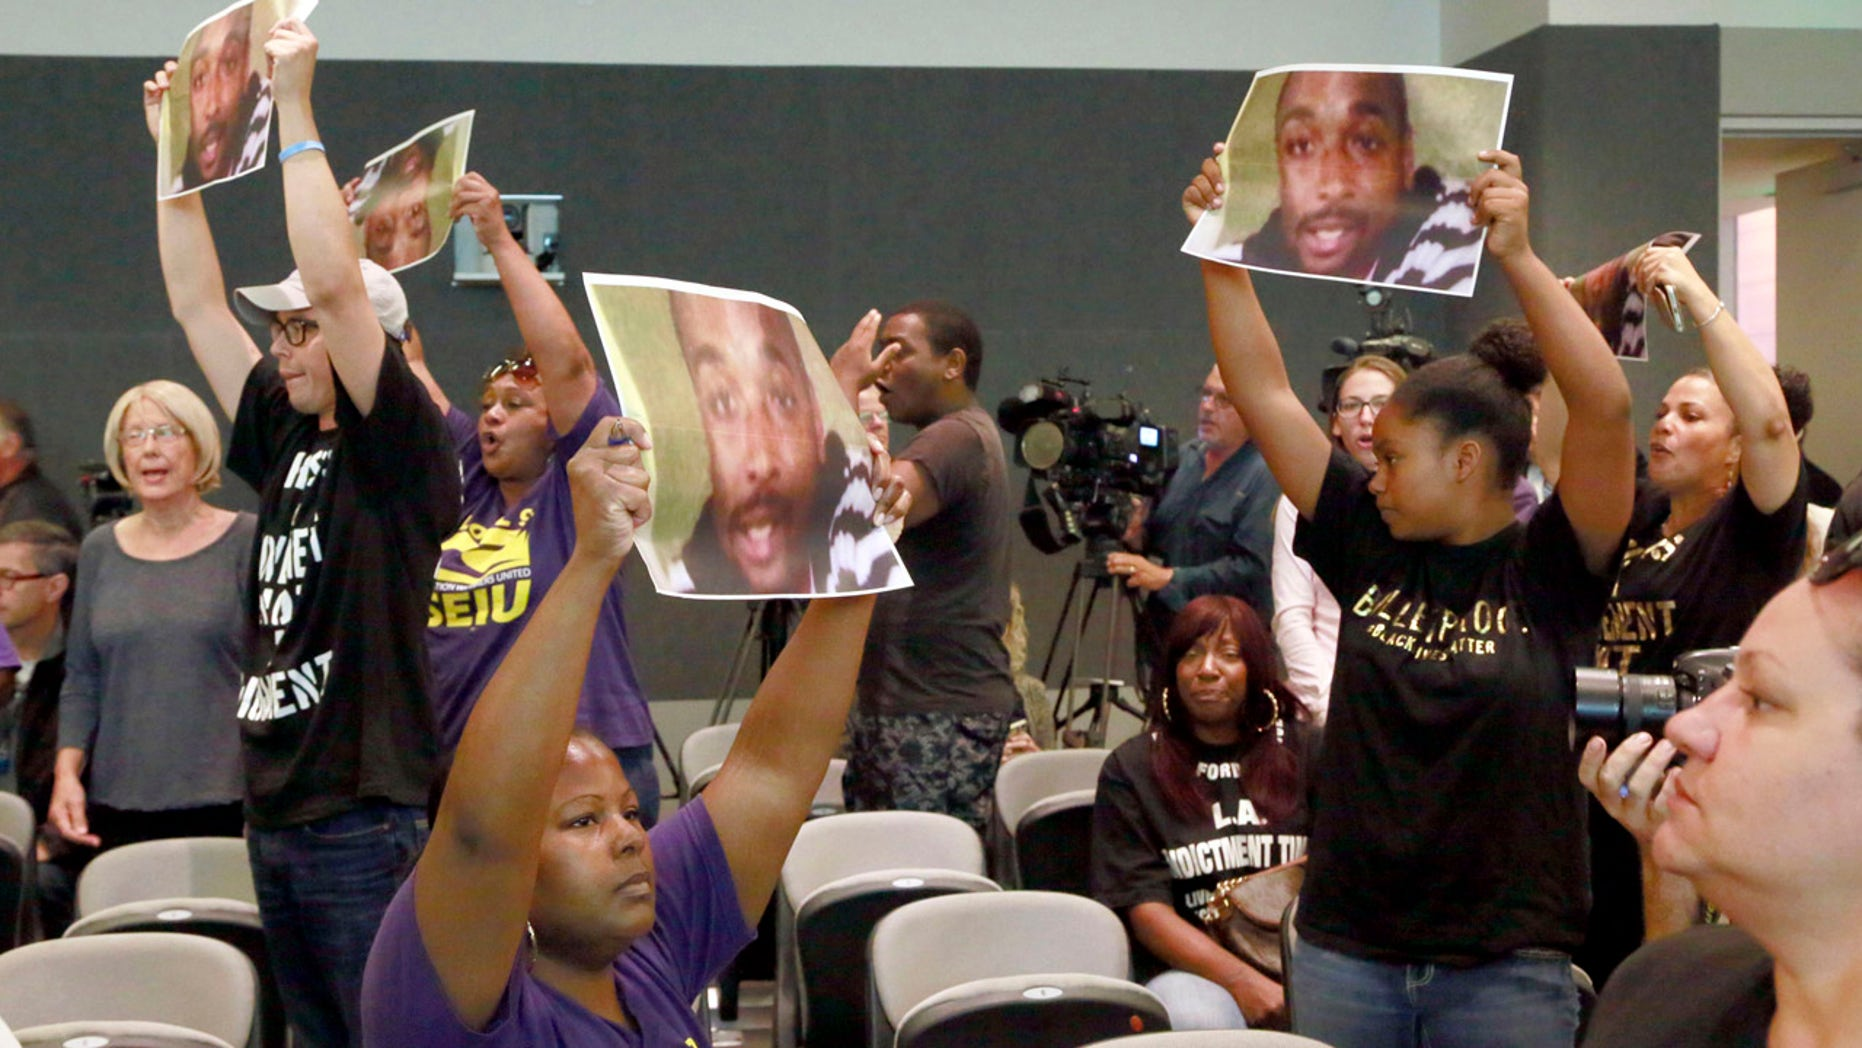 Aug. 11, 2015: Protesters holding photos of Ezell Ford, chant for Los Angeles Police Chief Charlie Beck's firing during a Los Angeles Police Commission meeting in downtown Los Angeles.